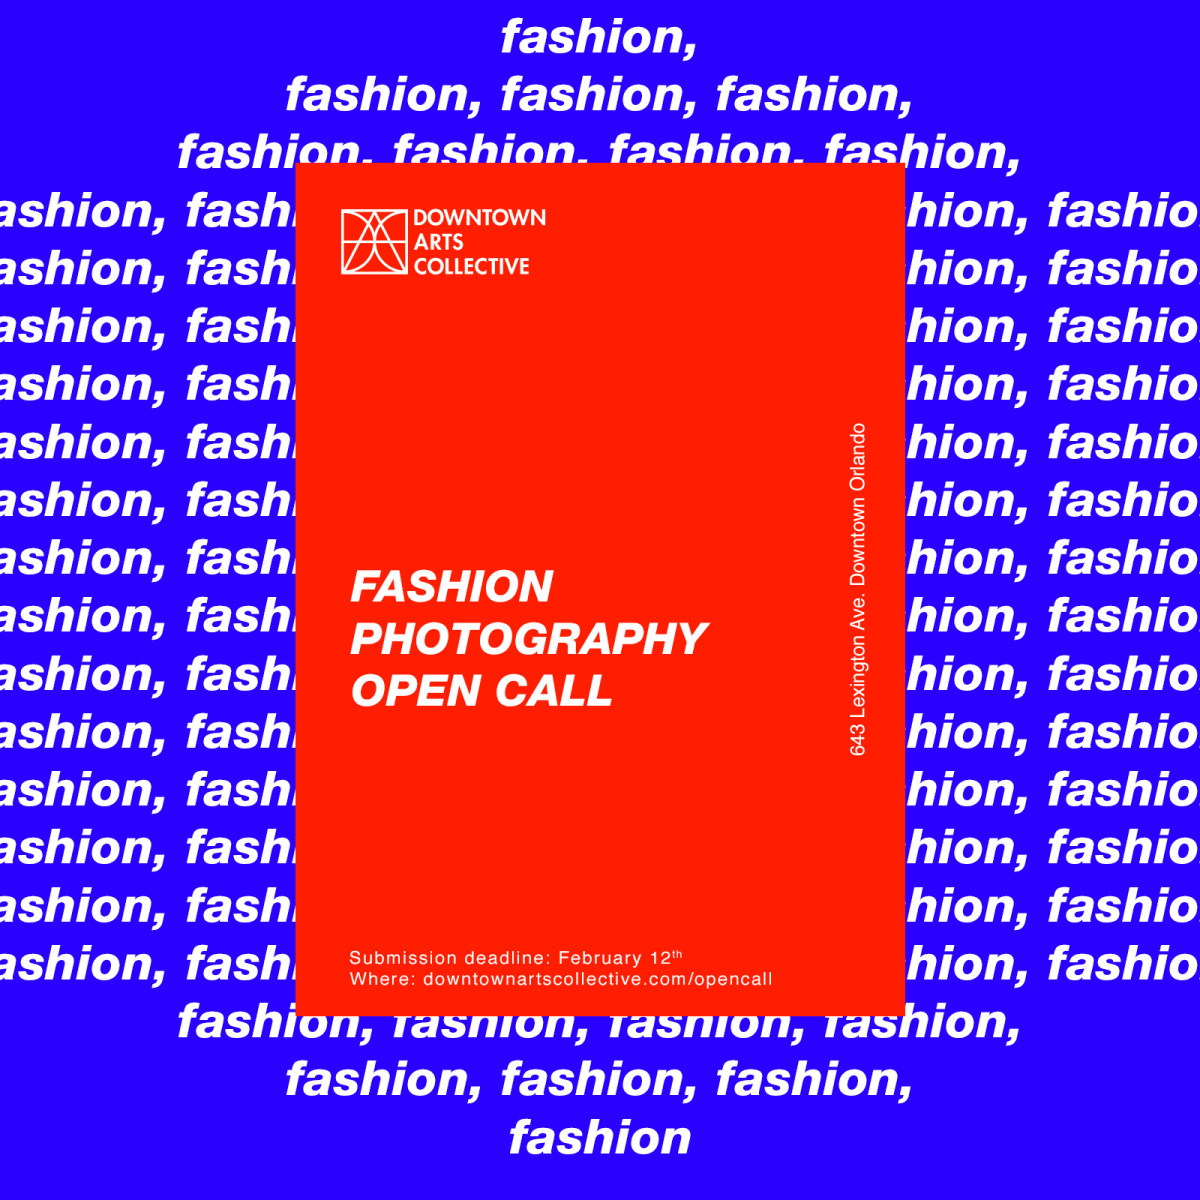 OPEN CALL: Fashion Photography Exhibition